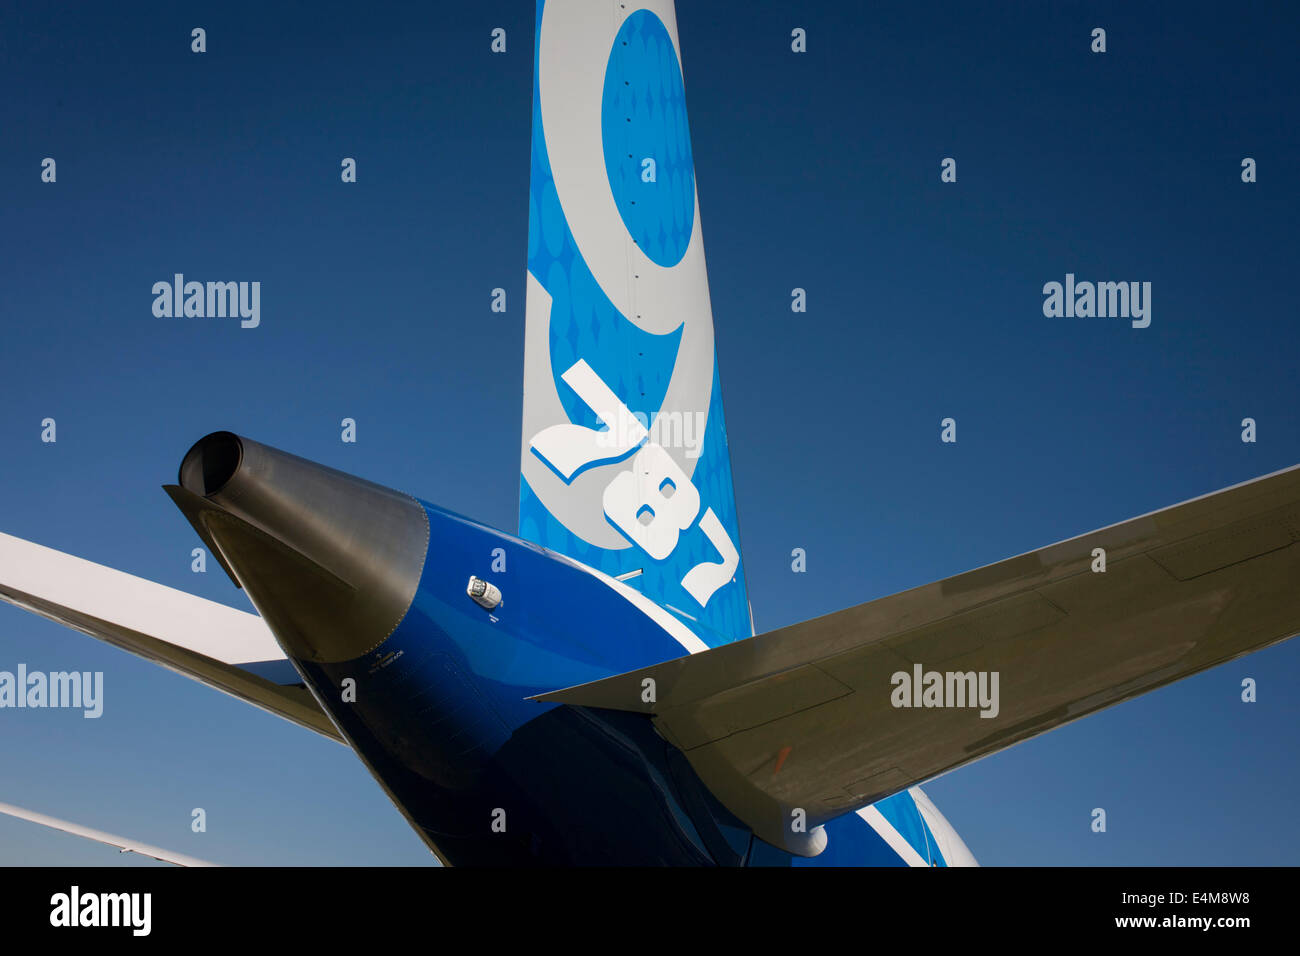 Detail of a Boeing 787-9 Dreamliner jet airliner tailplane at the Farnborough Air Show, England. The Boeing 787 - Stock Image